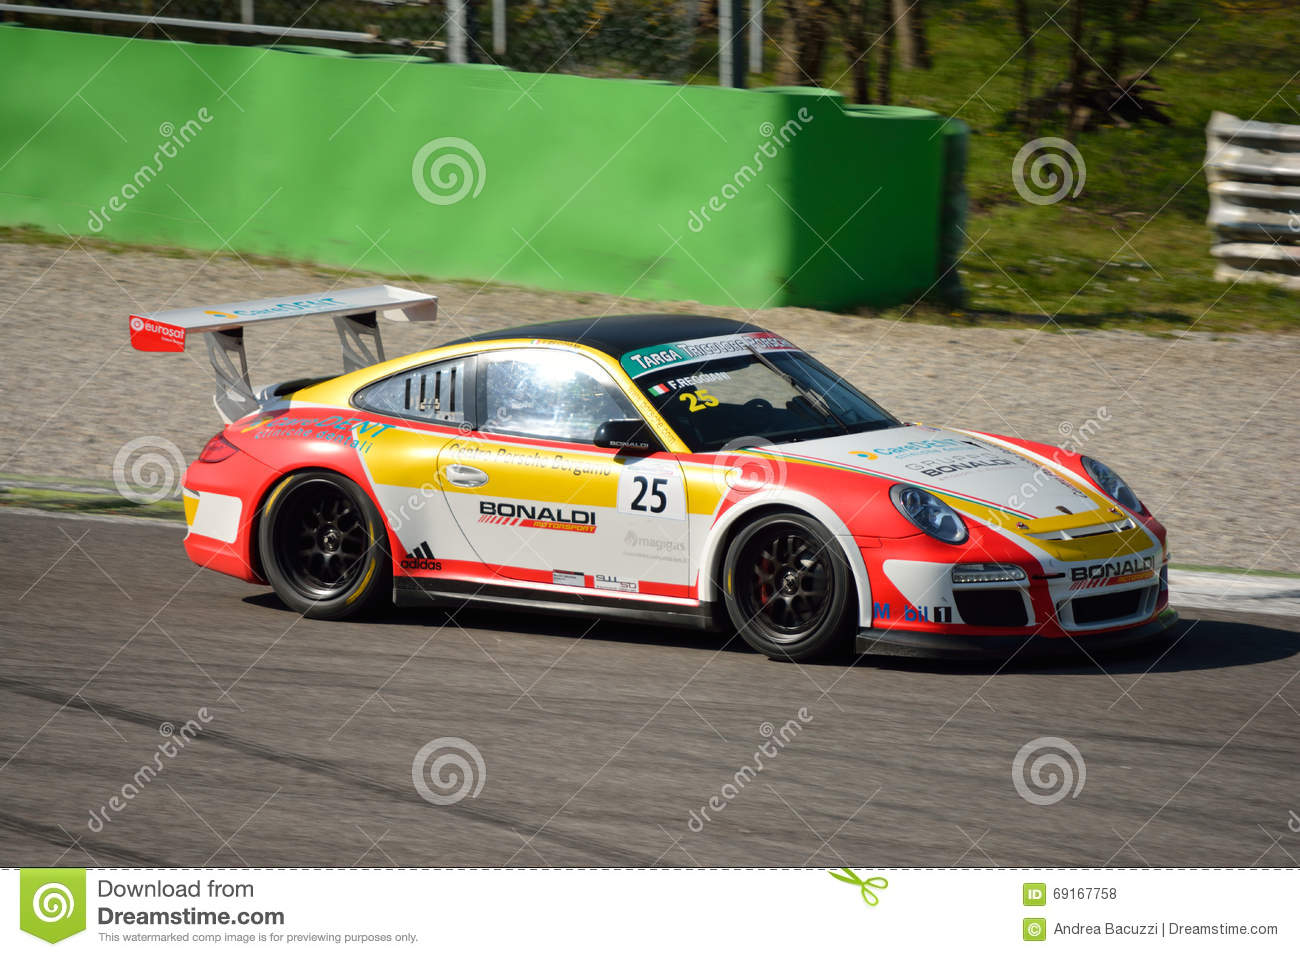 bonaldi motorsport porsche 911 gt3 cup at monza editorial stock photo image 69167758. Black Bedroom Furniture Sets. Home Design Ideas